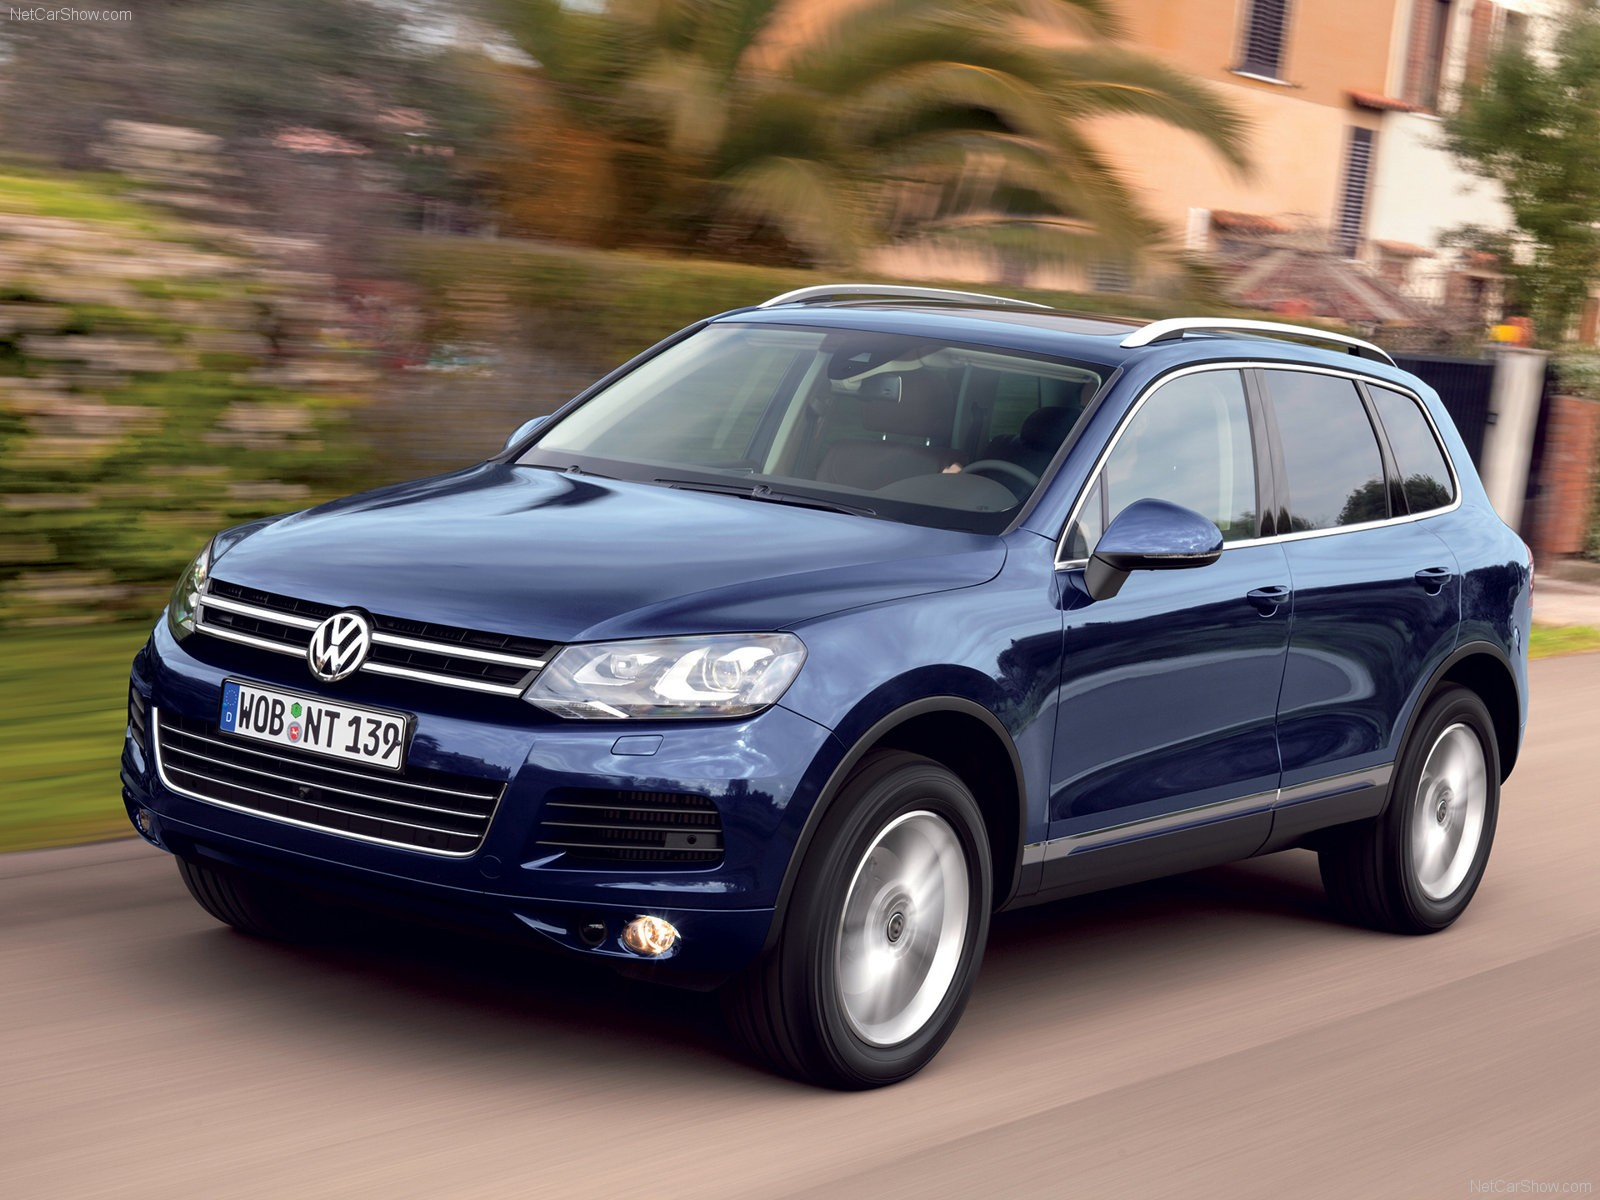 2012 volkswagen touareg 7p5 pictures information and specs auto. Black Bedroom Furniture Sets. Home Design Ideas